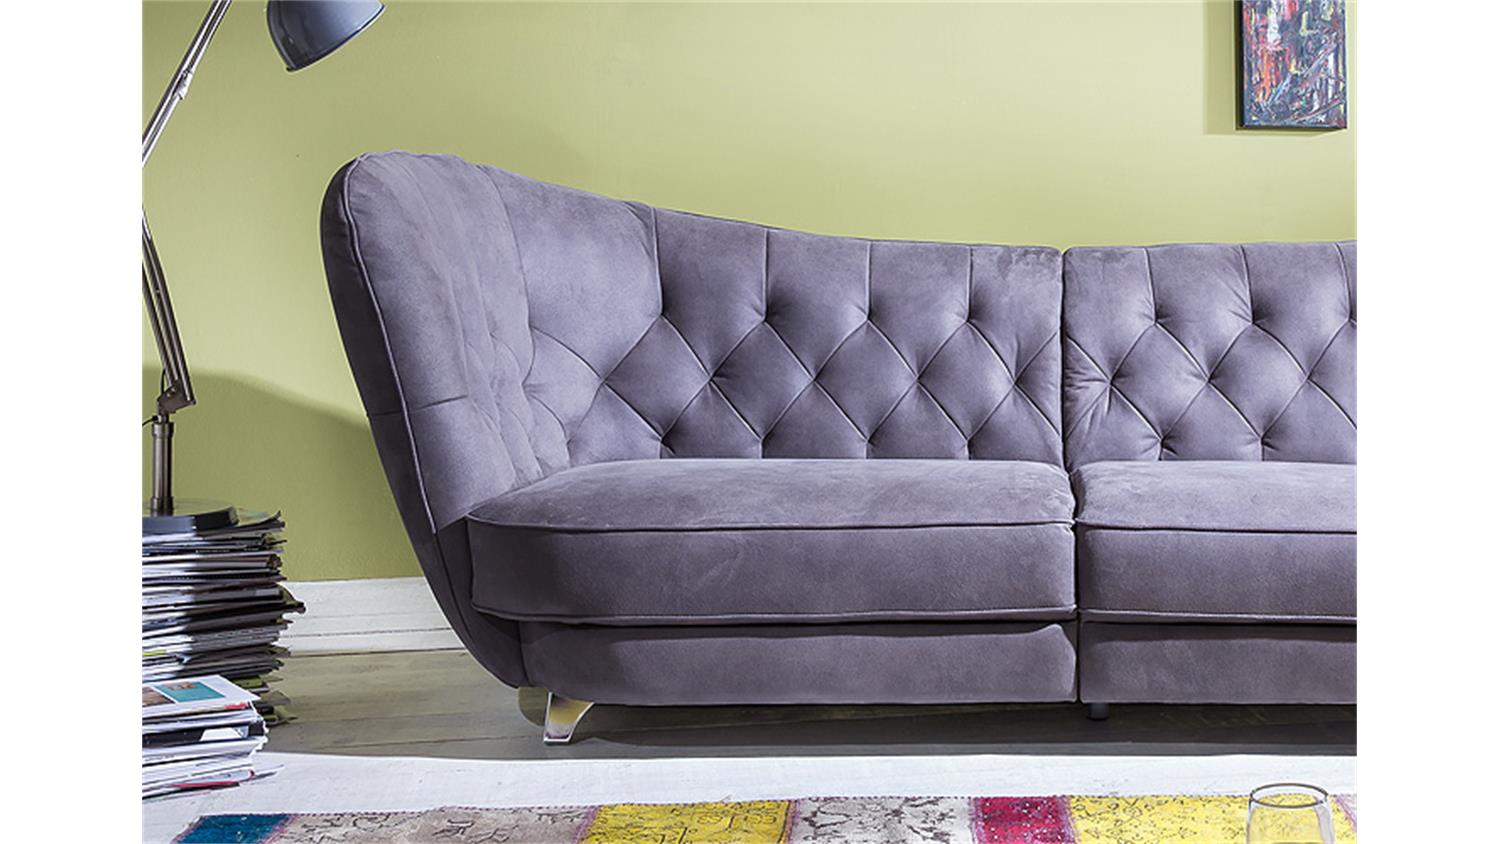 Retro Ecksofa Leder Ecksofa Retro Ecksofa Retro With Ecksofa Retro Excellent